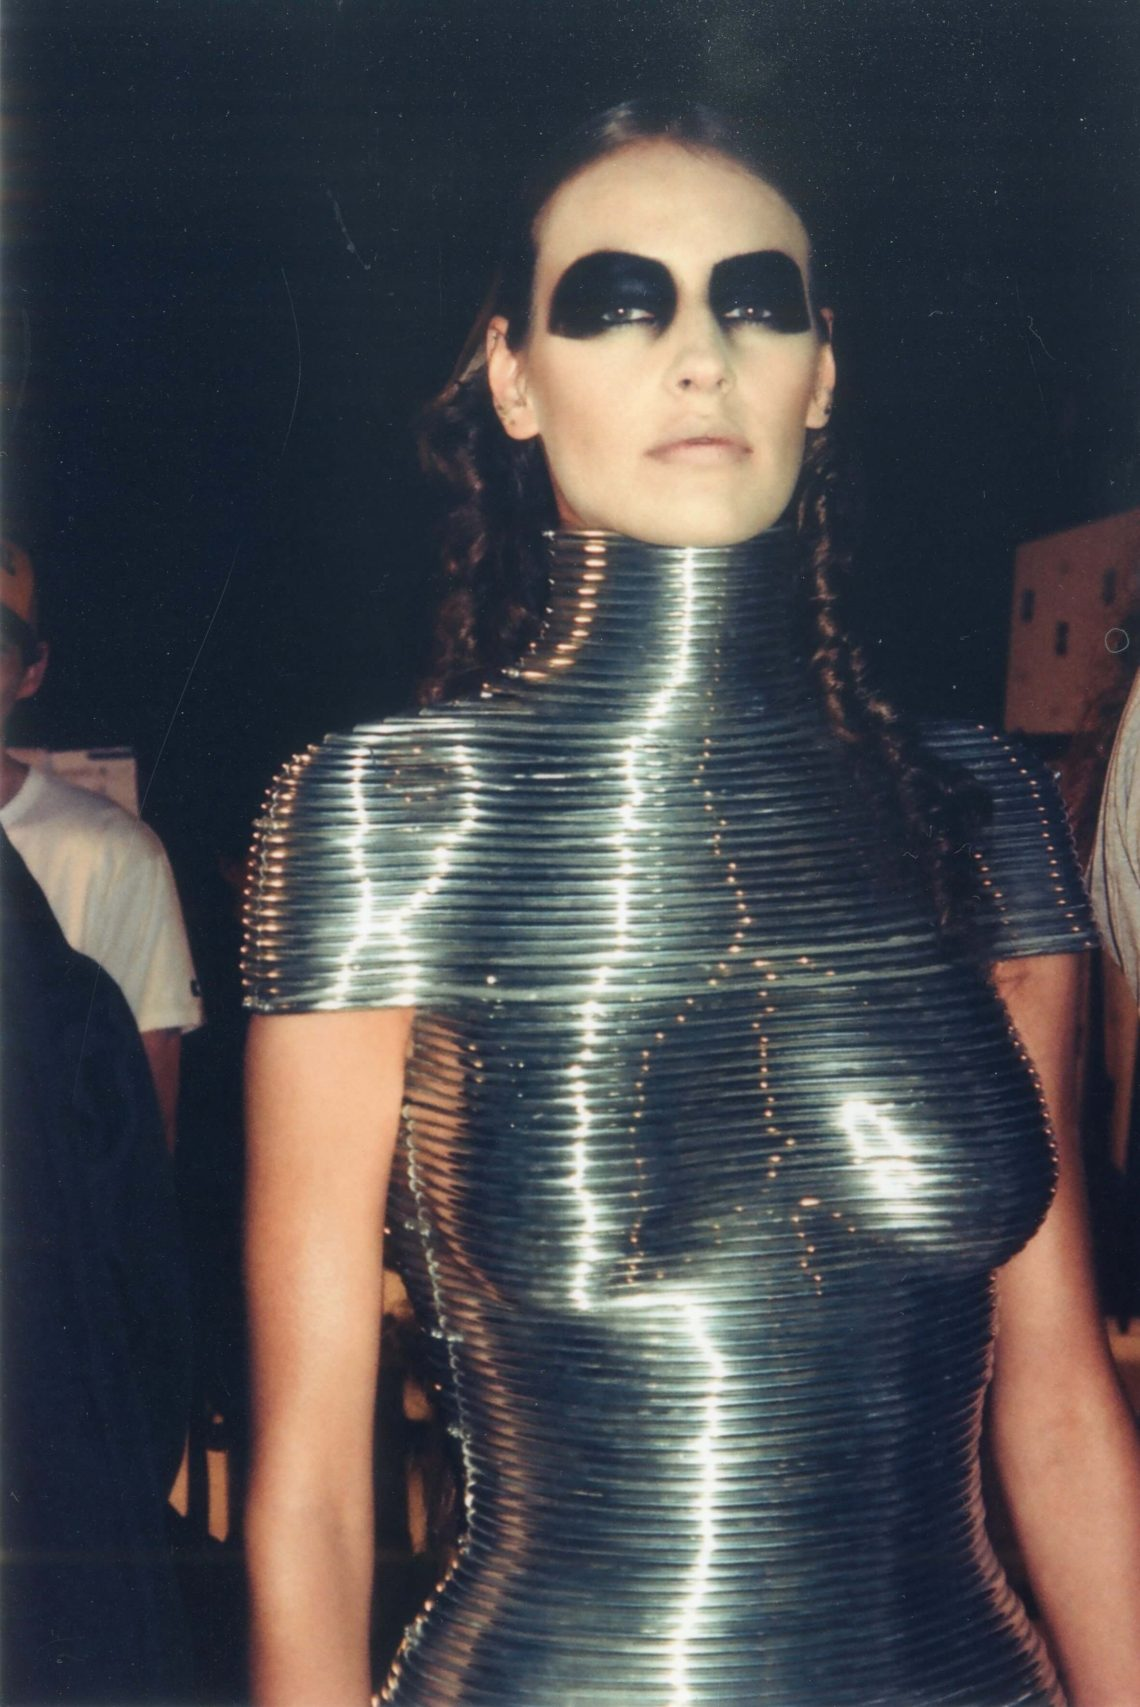 Mintsquare_It-Takes-Two-to-Make-the-Fashion-World-Go-Round_Aluminium-Coiled-Corset-by-Shaun-Leane-for-Alexander-McQueen-The-Overlook-Autumn-Winter-1999-Courtesy-of-Shaun-Leane-archive